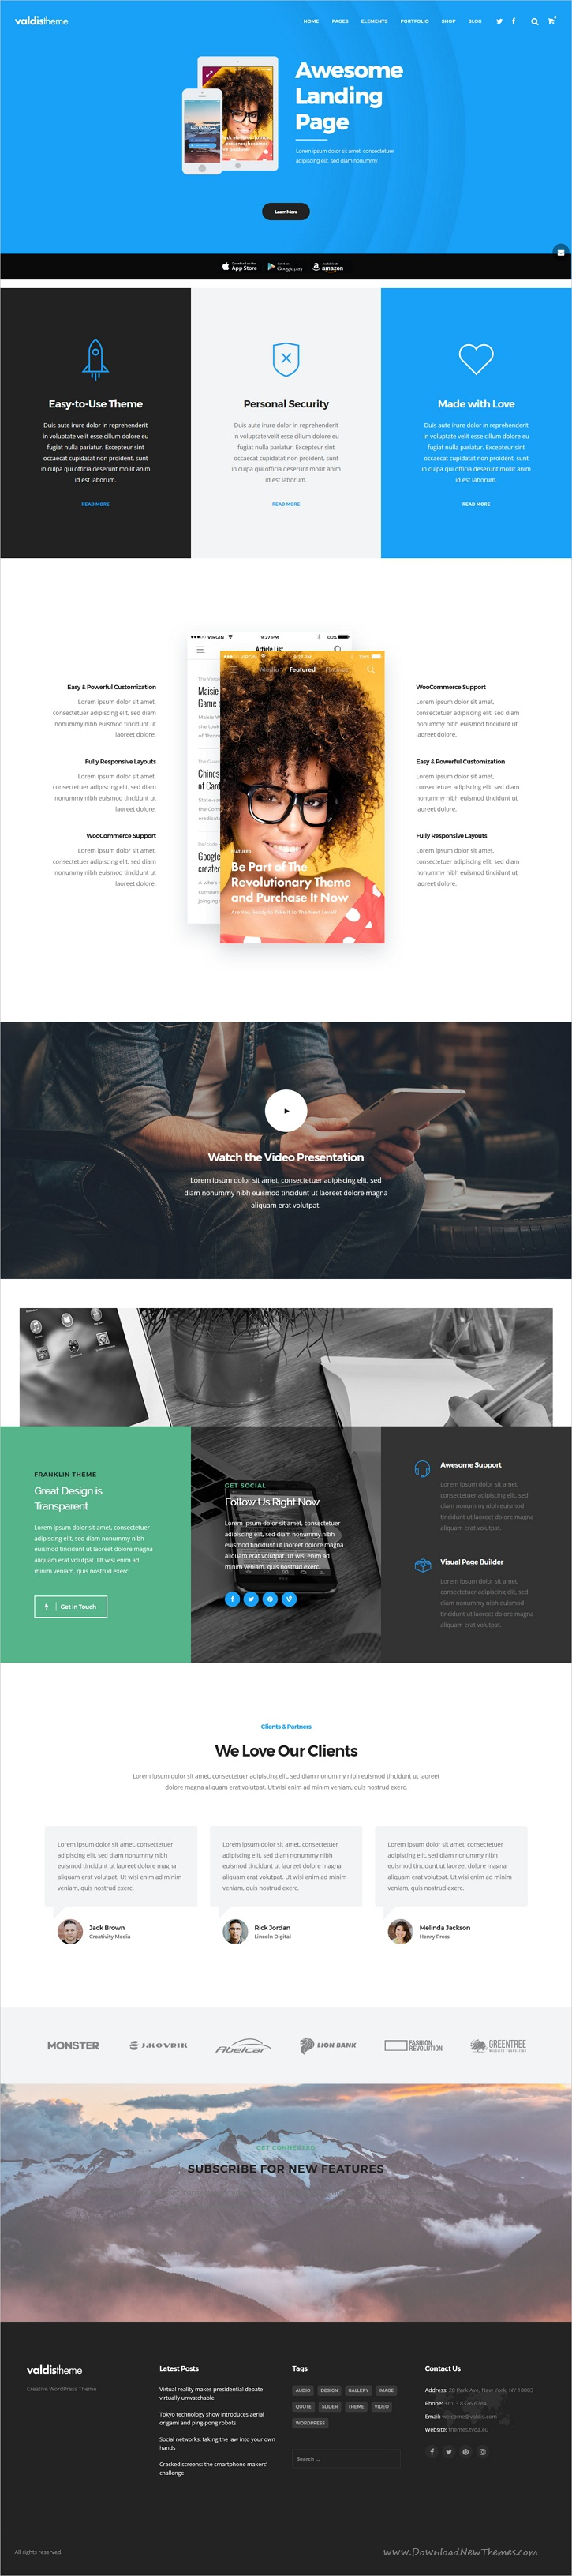 valdis is a clean, creative and powerful responsive #wordpress, Presentation templates